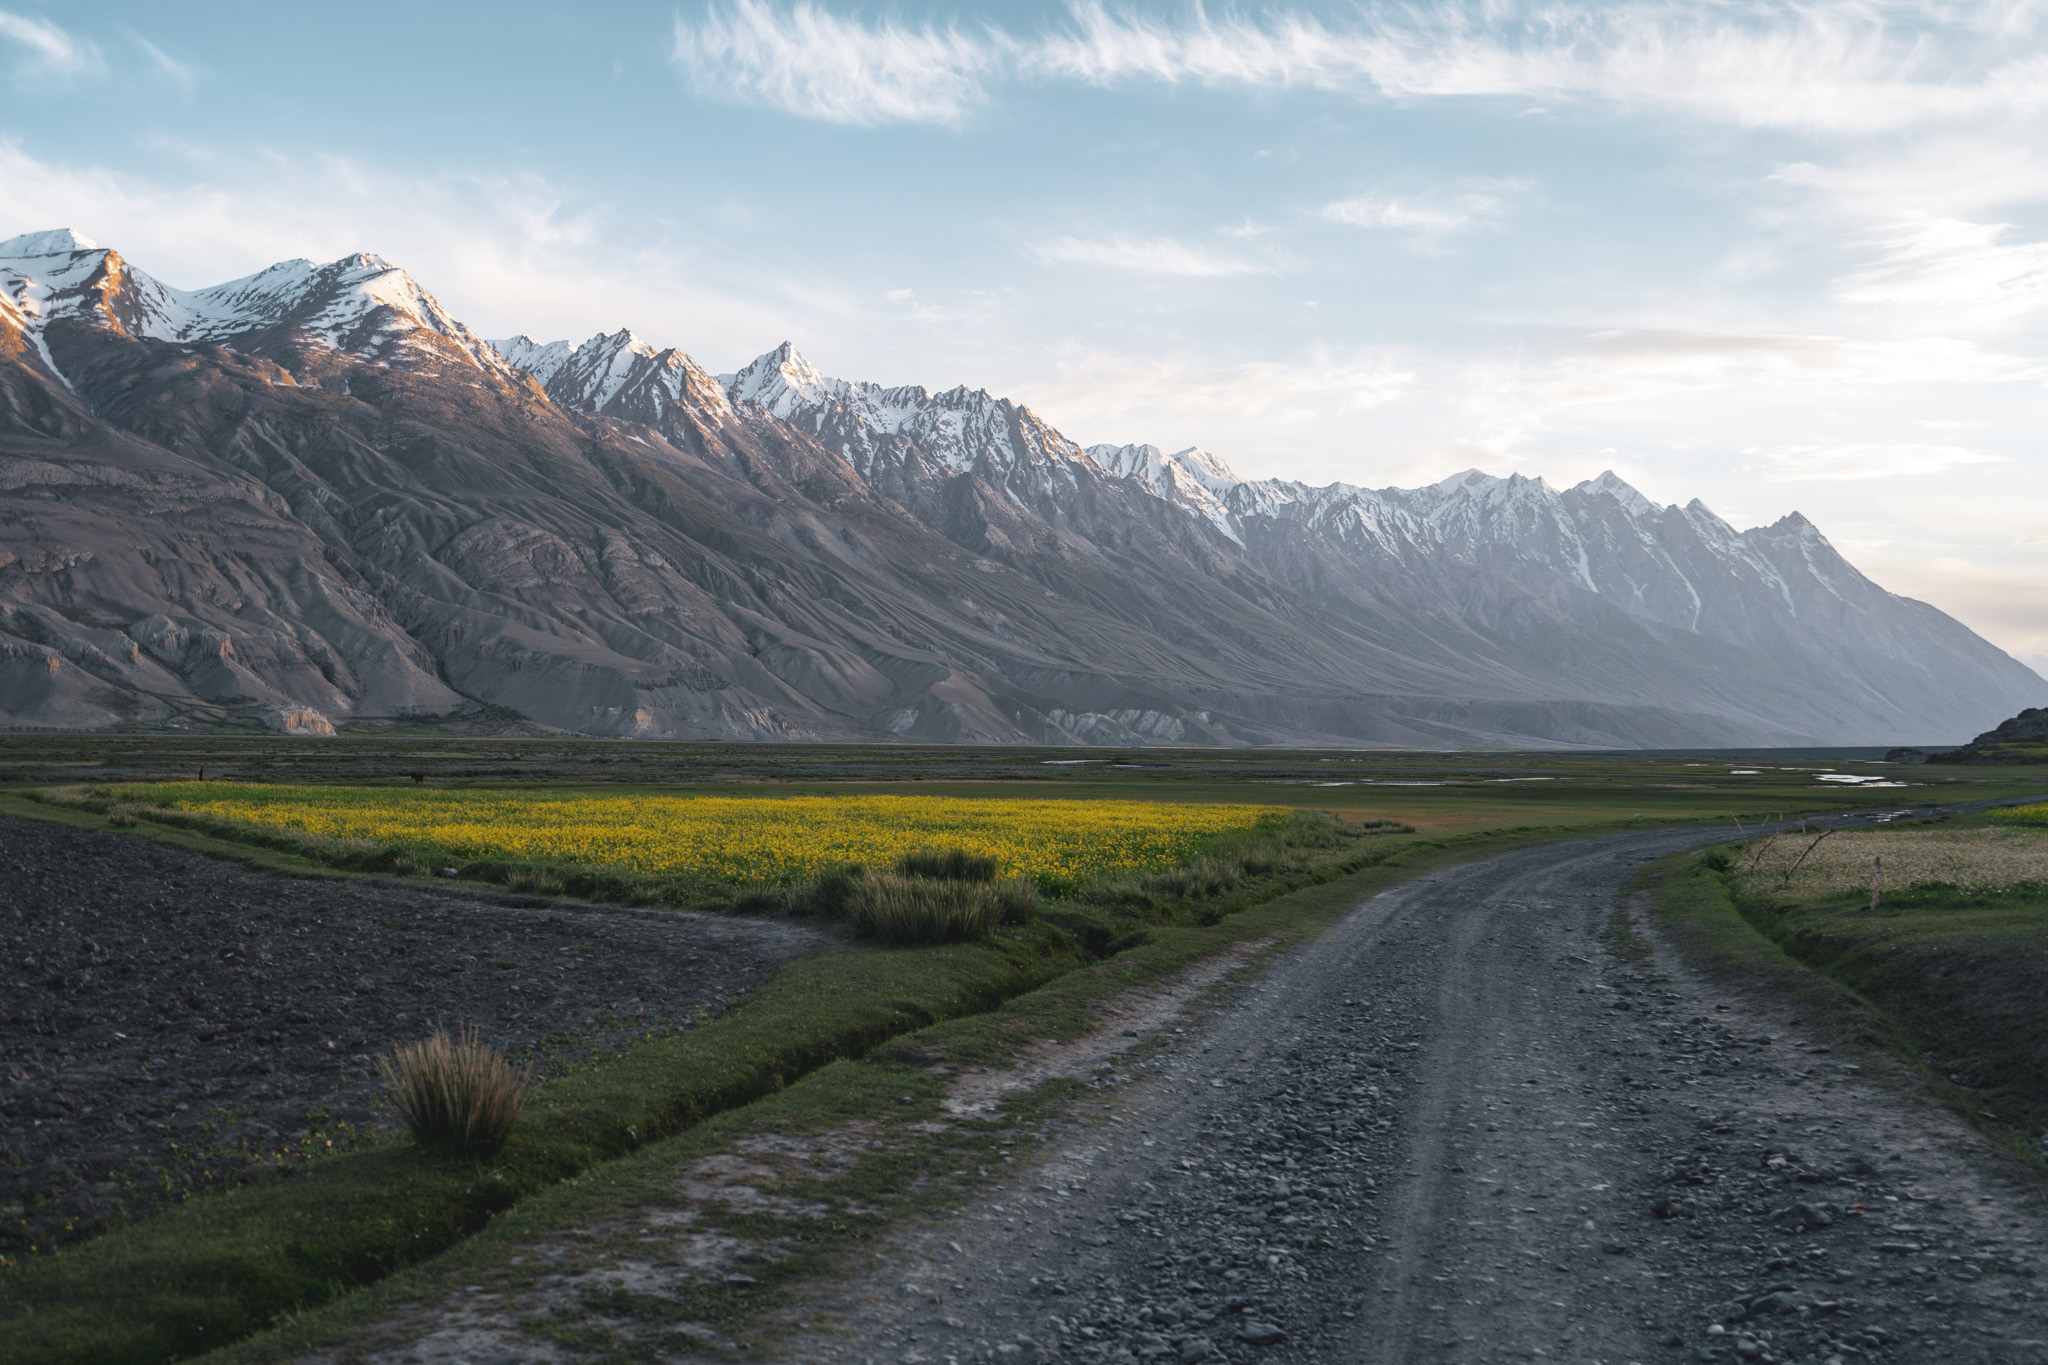 Sunset in the Wakhan Valley